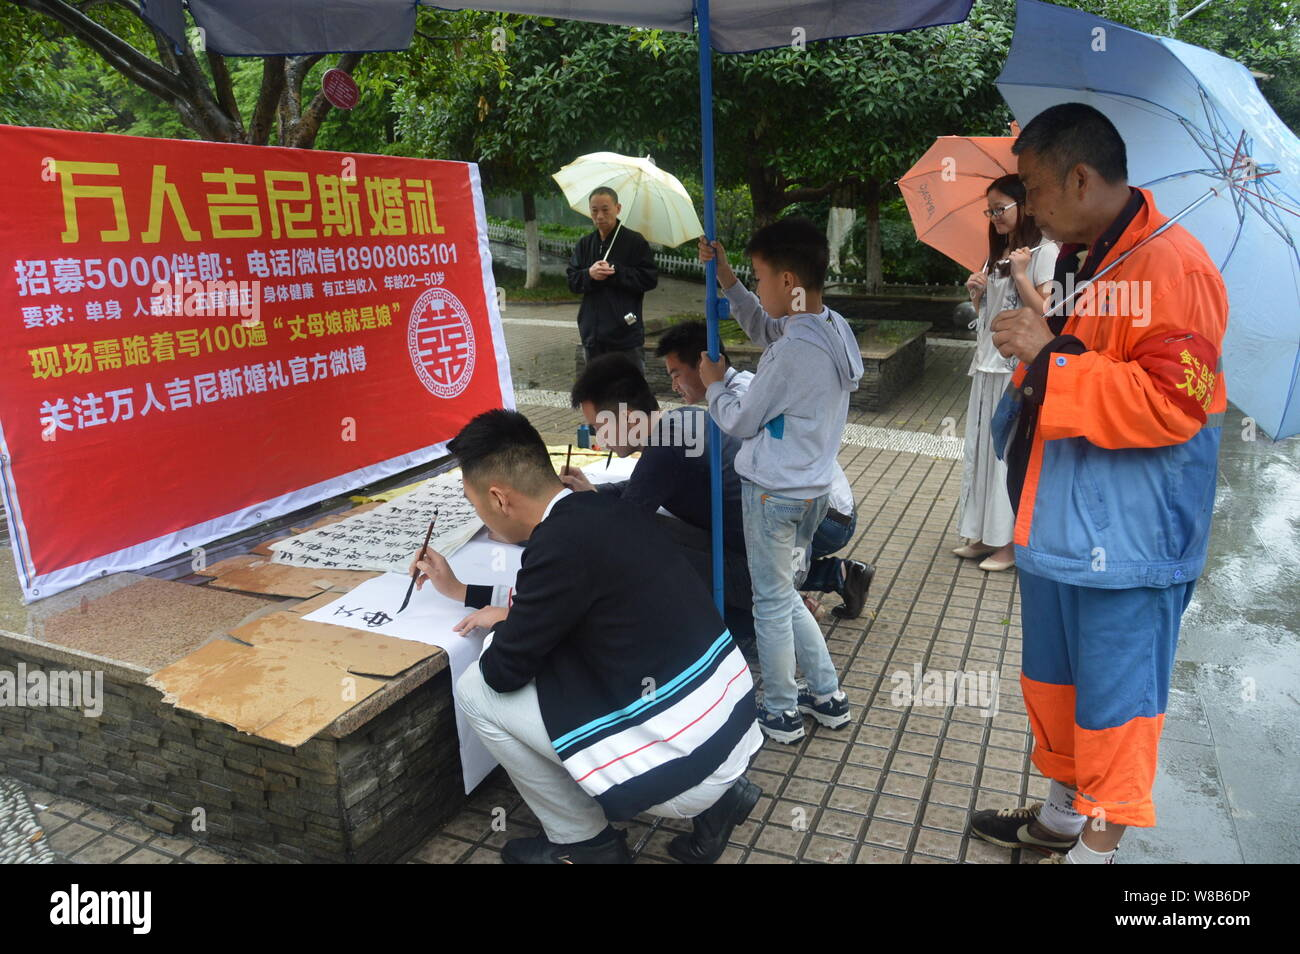 """Chinese applicants write a slogan """"Mother-in-law is mother"""" during a recruitment event for 5,000 best men for a grand wedding featuring 10,000 best me Stock Photo"""